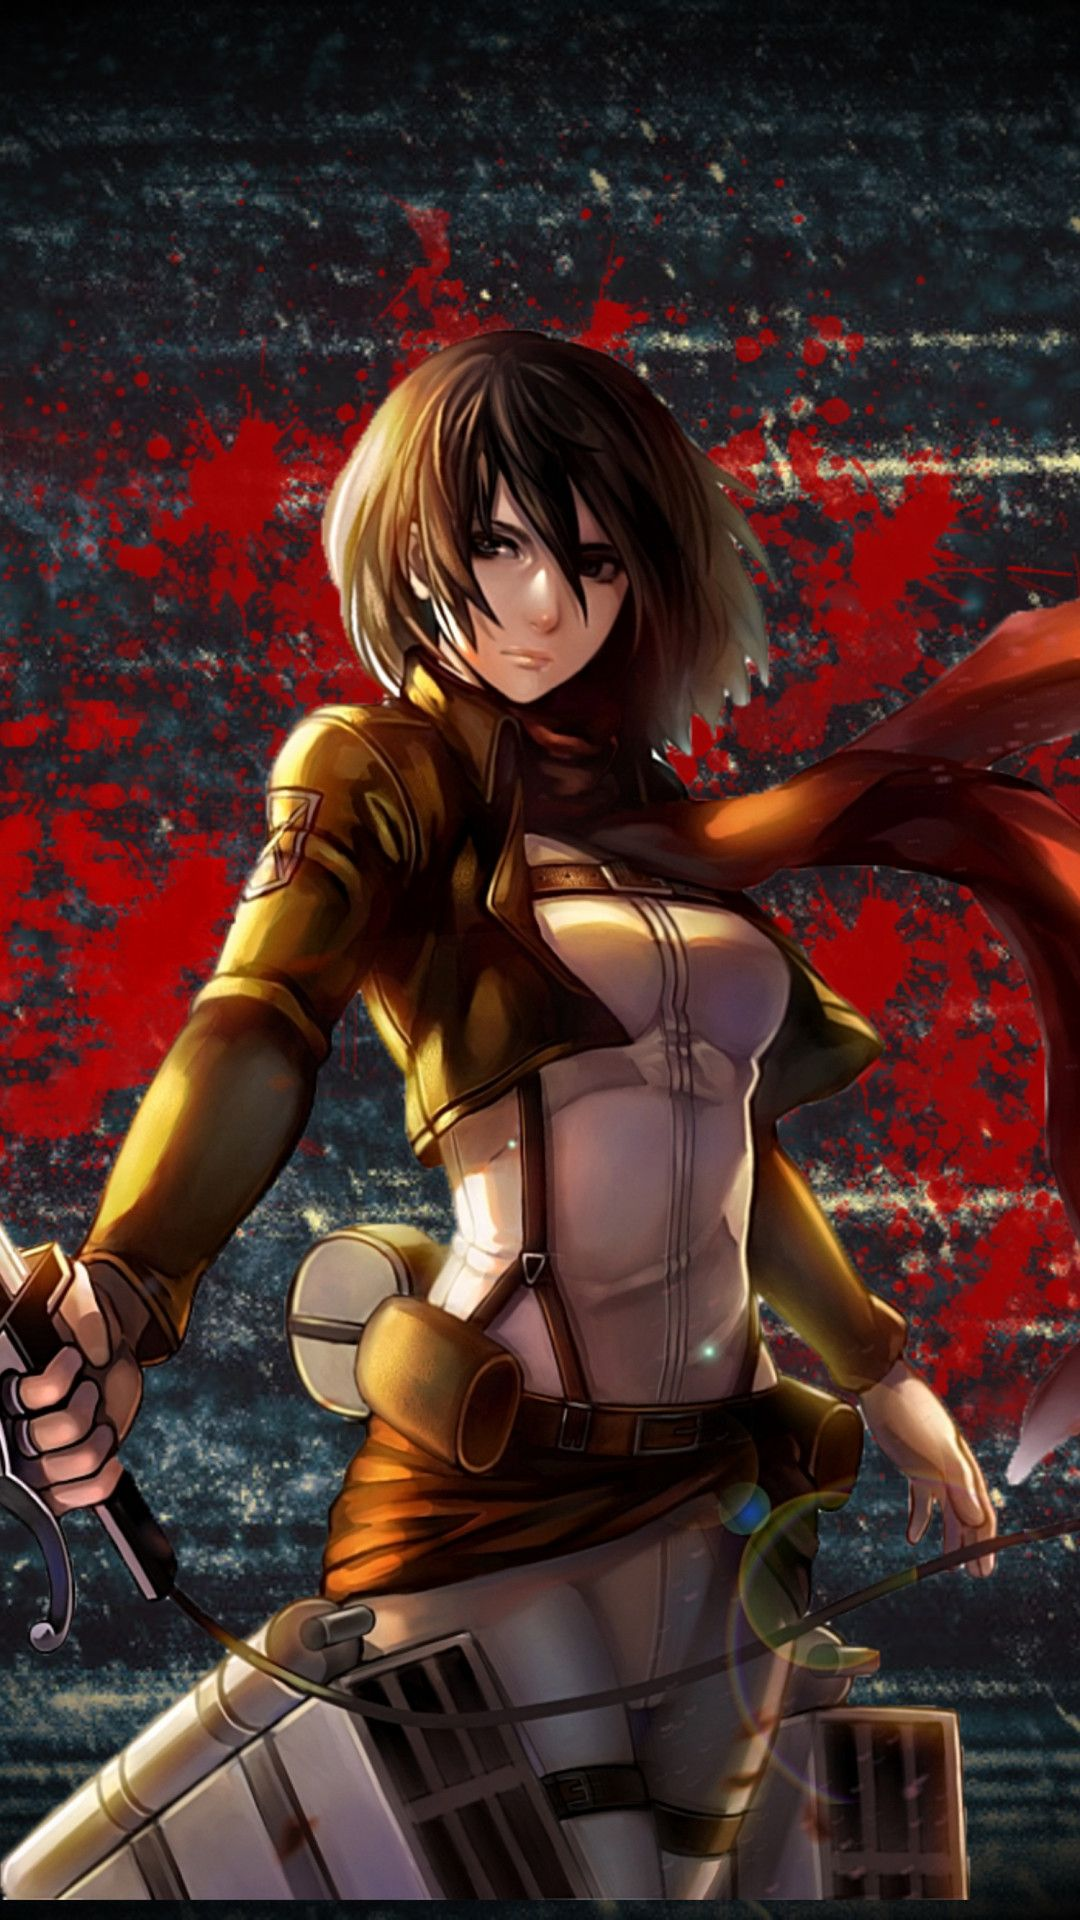 1080x1920 Kyojin Mikasa Ackerman Wallpaper 558308 Anime Warrior Girl Attack On Titan Anime Attack On Titan